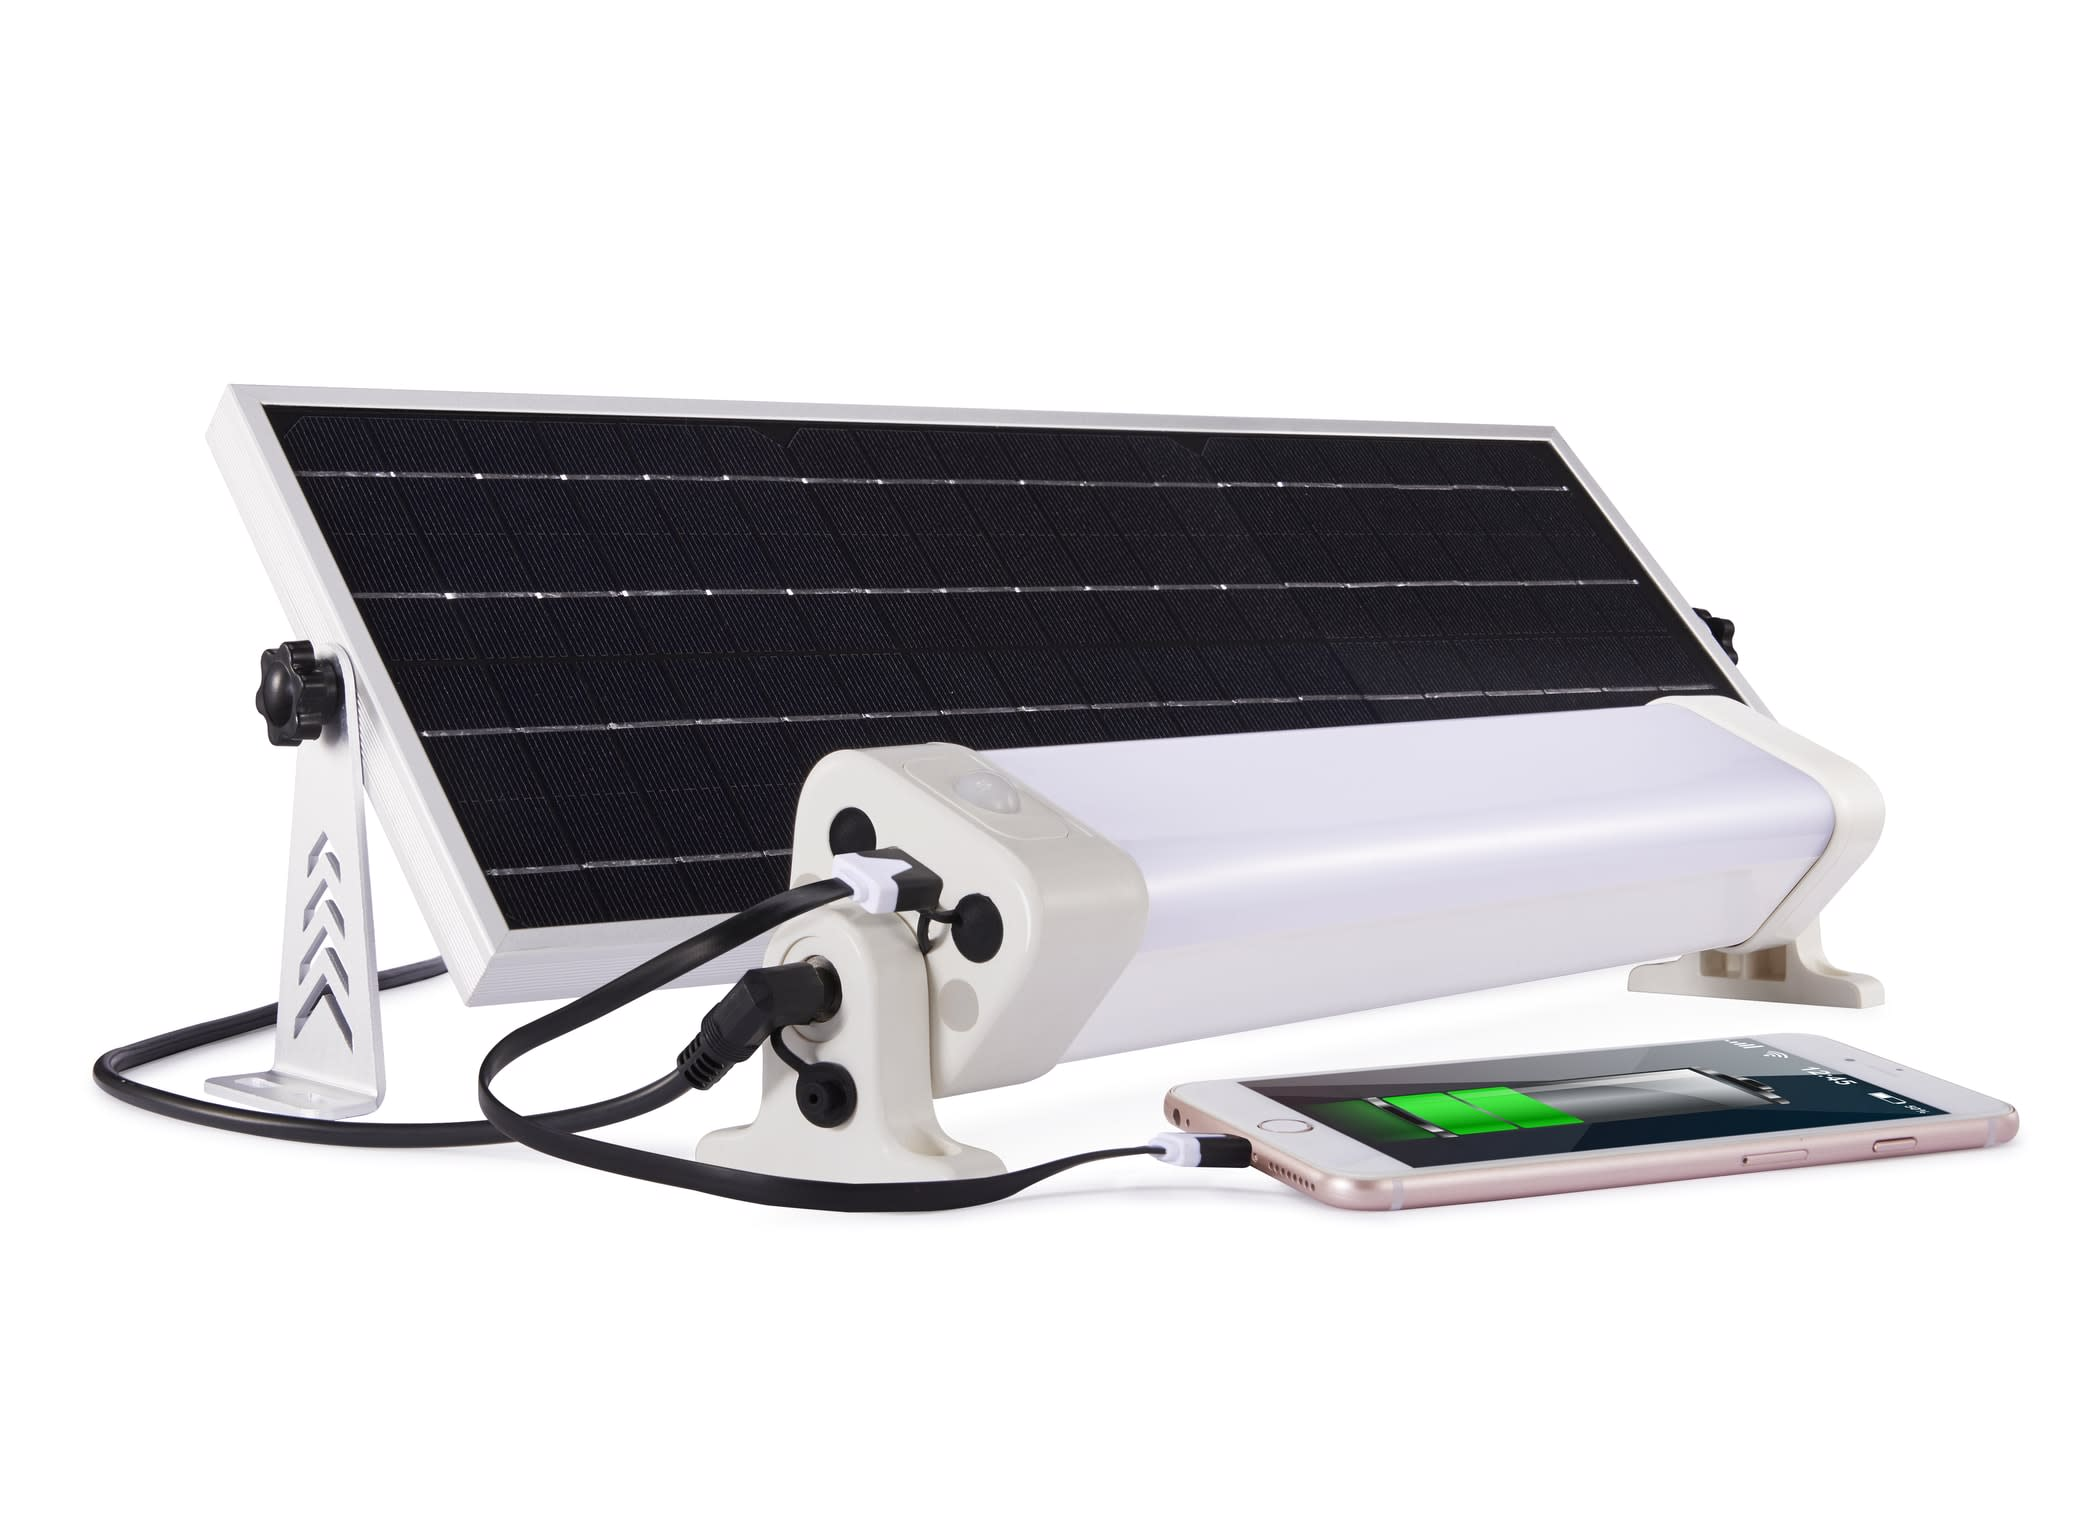 Solar Utility Kit from solar-power